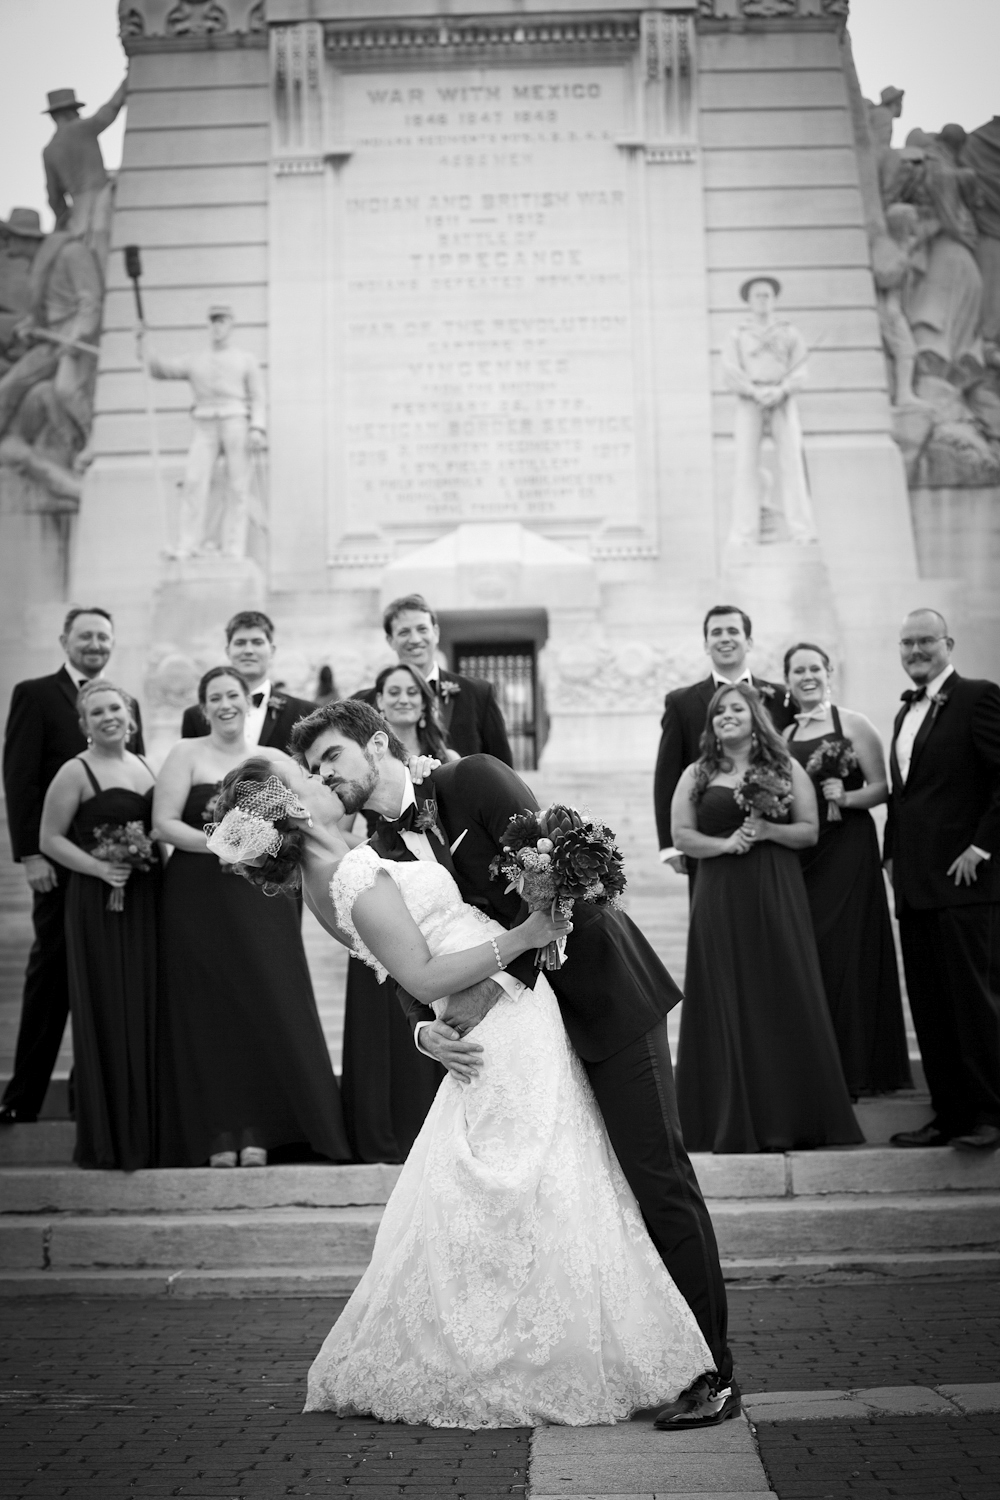 Indianapolis-Indiana-Monument-Circle-Wedding-Photographer-Crowes-Eye-Photography-Bride-Groom-Fun-formals-423.jpg